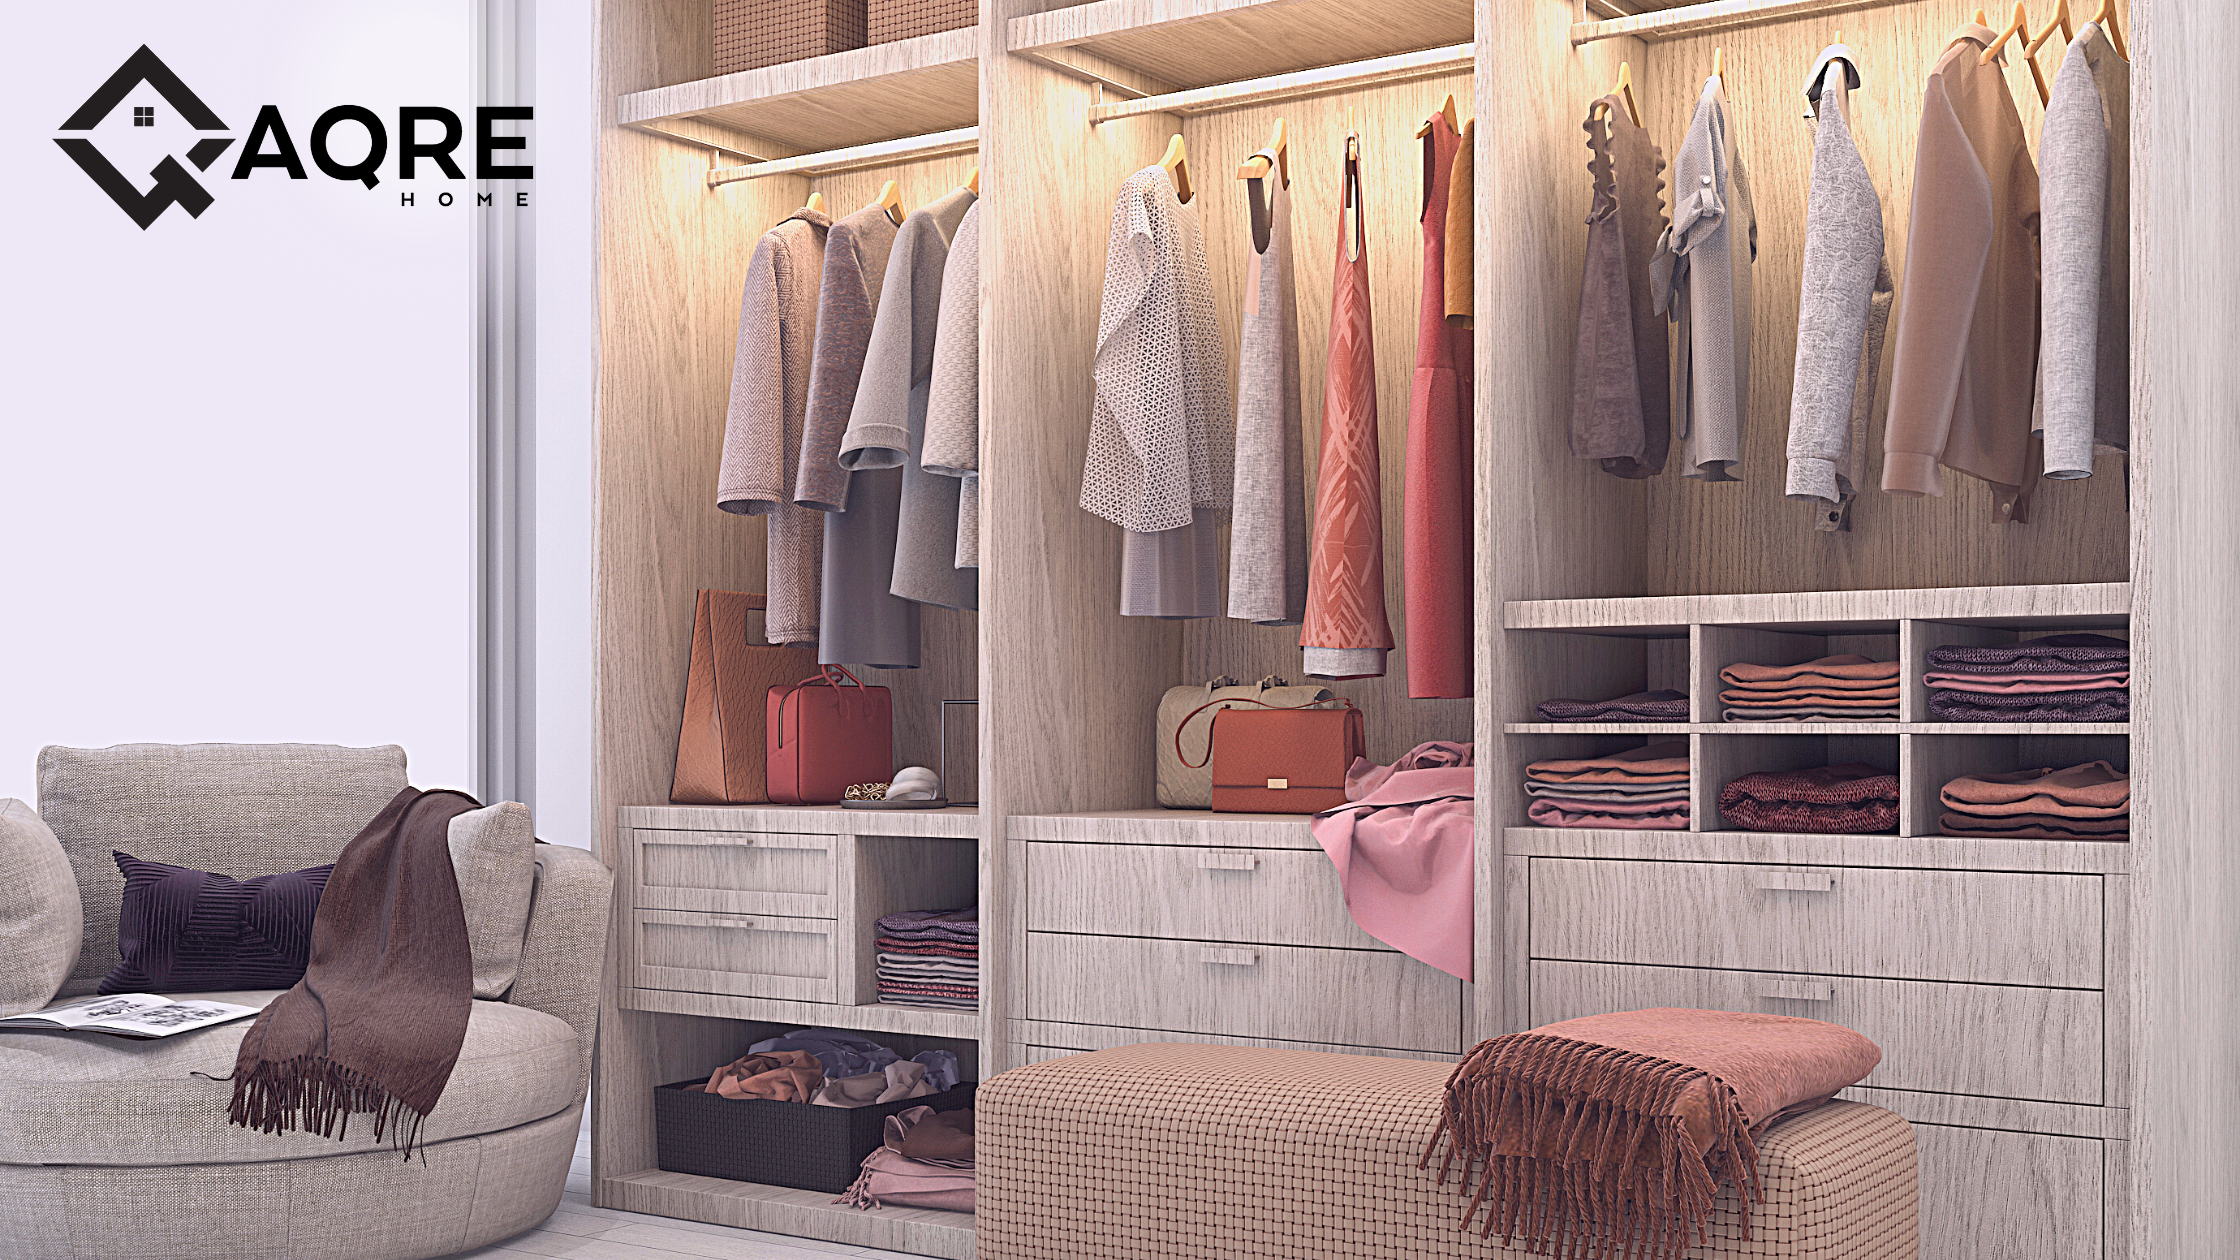 Let's Talk Closets: Why a Walk-in Closet Is a Must-Have for Any New Home Buyer